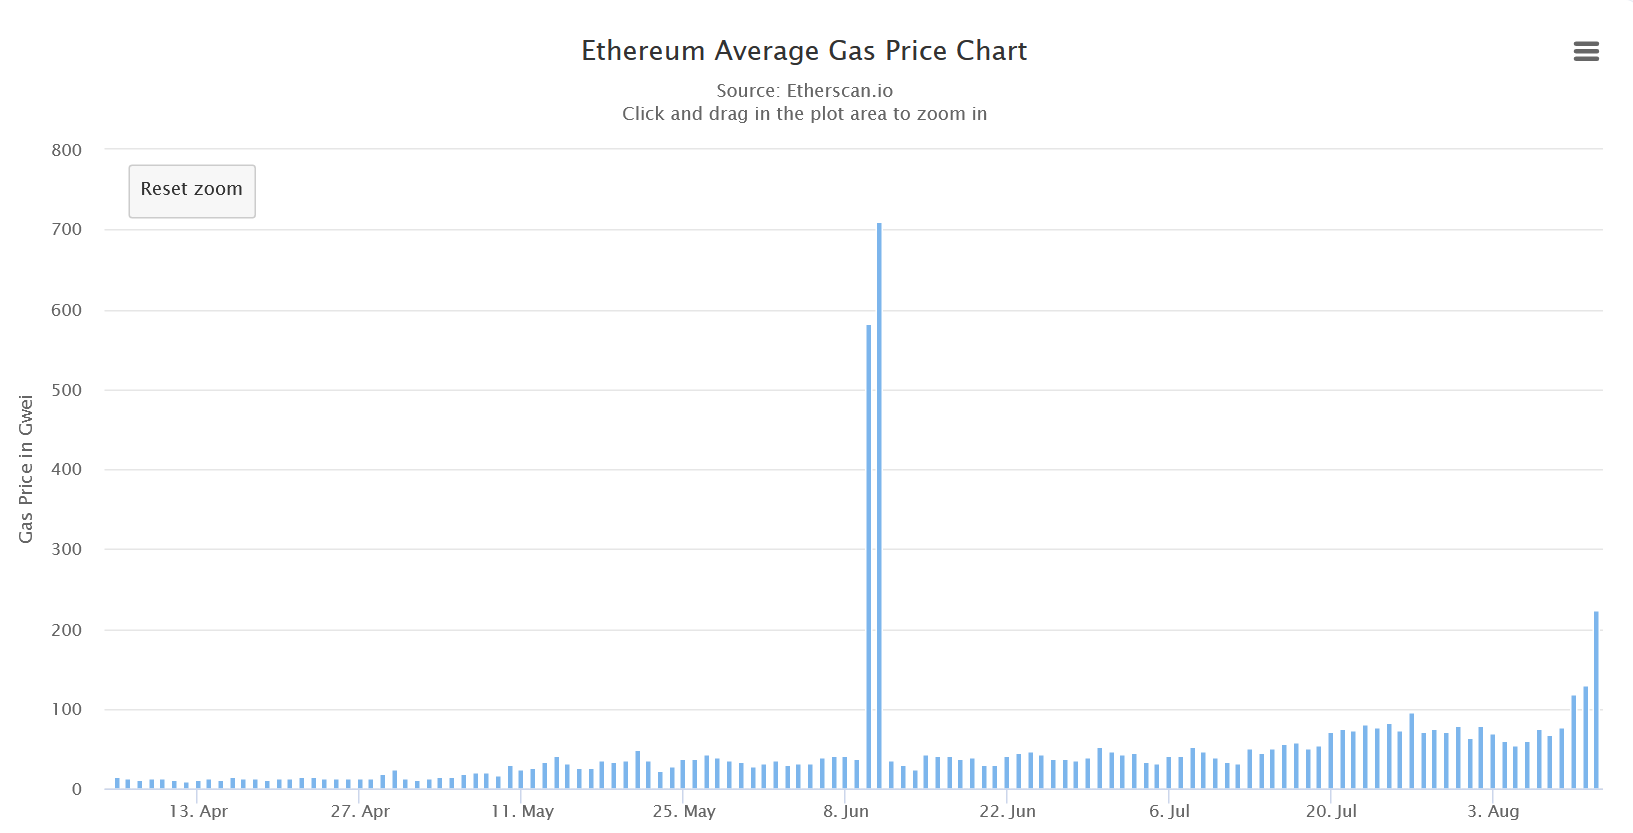 Ethereum Average Gas Price Chart from April to August 2020